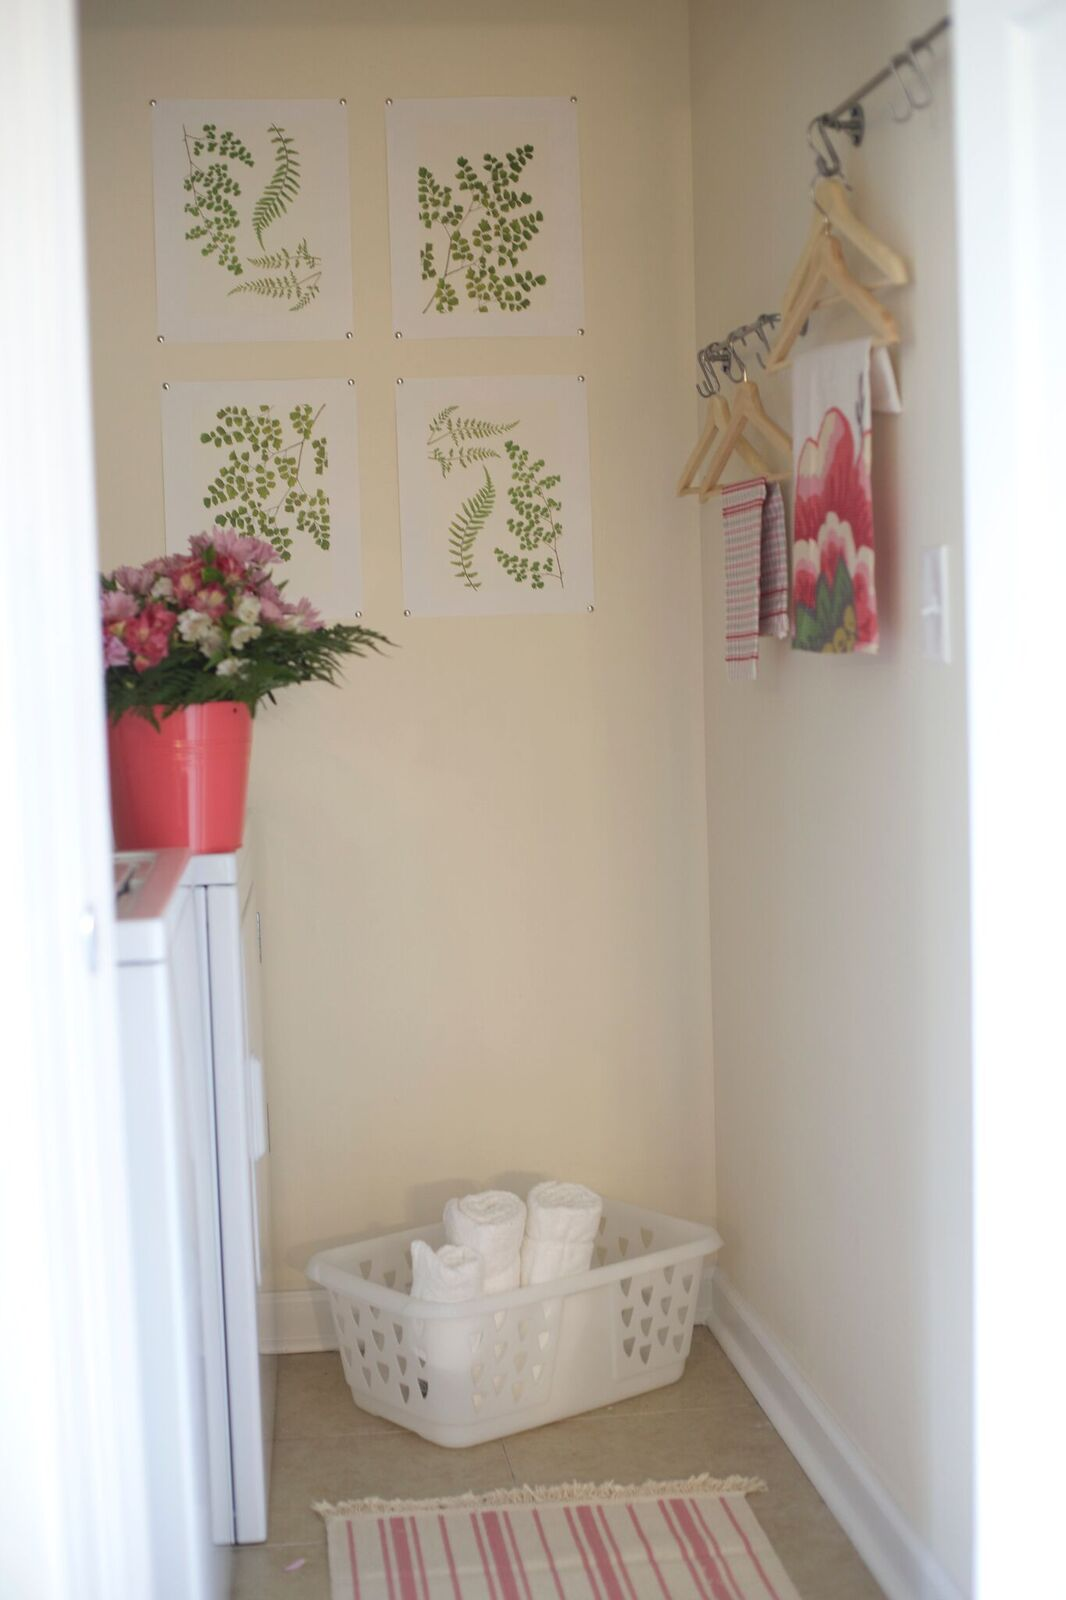 Habitat For Humanity Room Reveal - Two Thirty-Five Designs